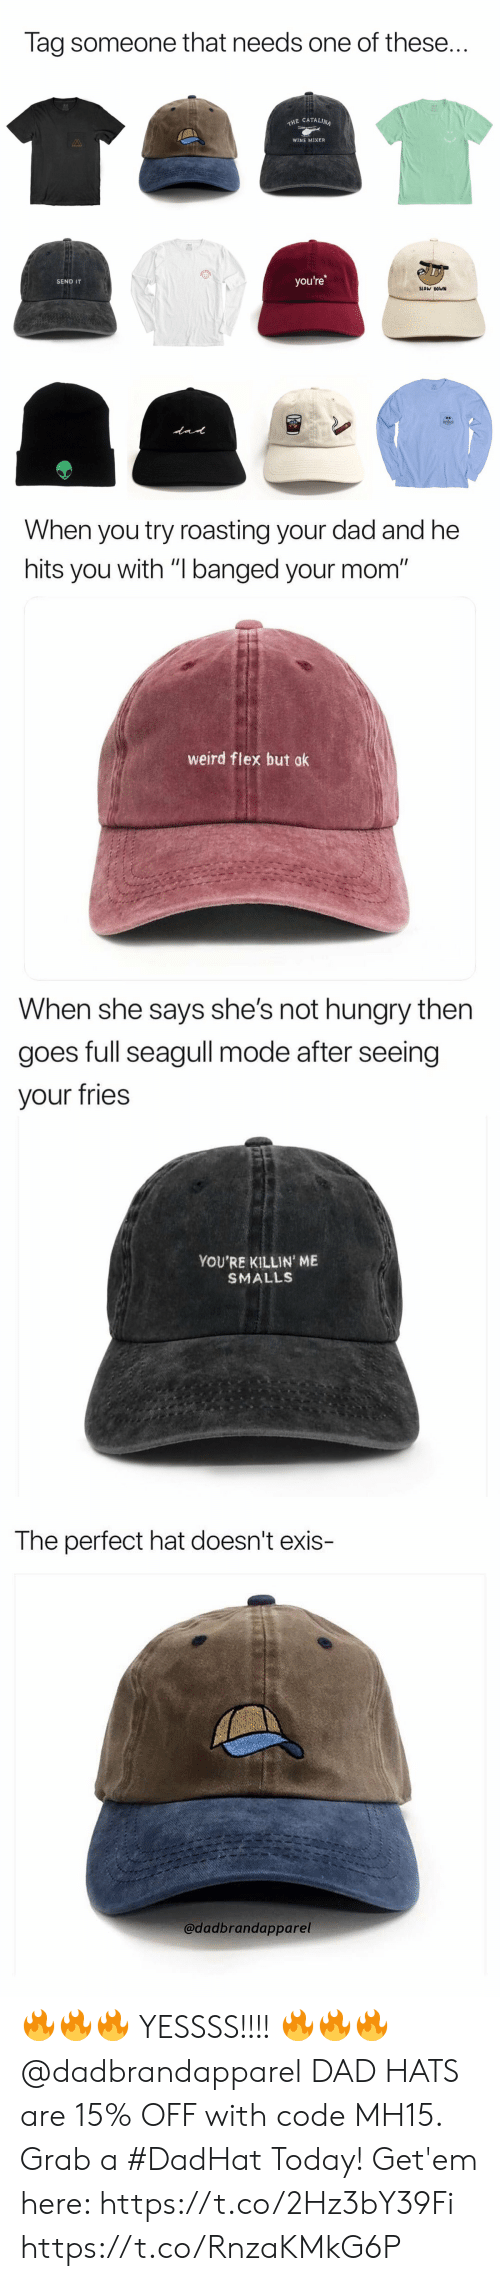 """Dad, Flexing, and Funny: Tag someone that needs one of these..  E CATALINA  WINE MIXER  you're  SEND IT  SLOW DOWN   When you try roasting your dad and he  hits you with """"I banged your mom""""  weird flex but ok   When she says she's not nungry tnen  goes full seagull mode after seeing  your fries  YOU'RE KILLIN' ME  SMALLS   The perfect hat doesn't exis-  @dadbrandapparel 🔥🔥🔥 YESSSS!!!! 🔥🔥🔥 @dadbrandapparel DAD HATS are 15% OFF with code MH15. Grab a #DadHat Today! Get'em here: https://t.co/2Hz3bY39Fi https://t.co/RnzaKMkG6P"""